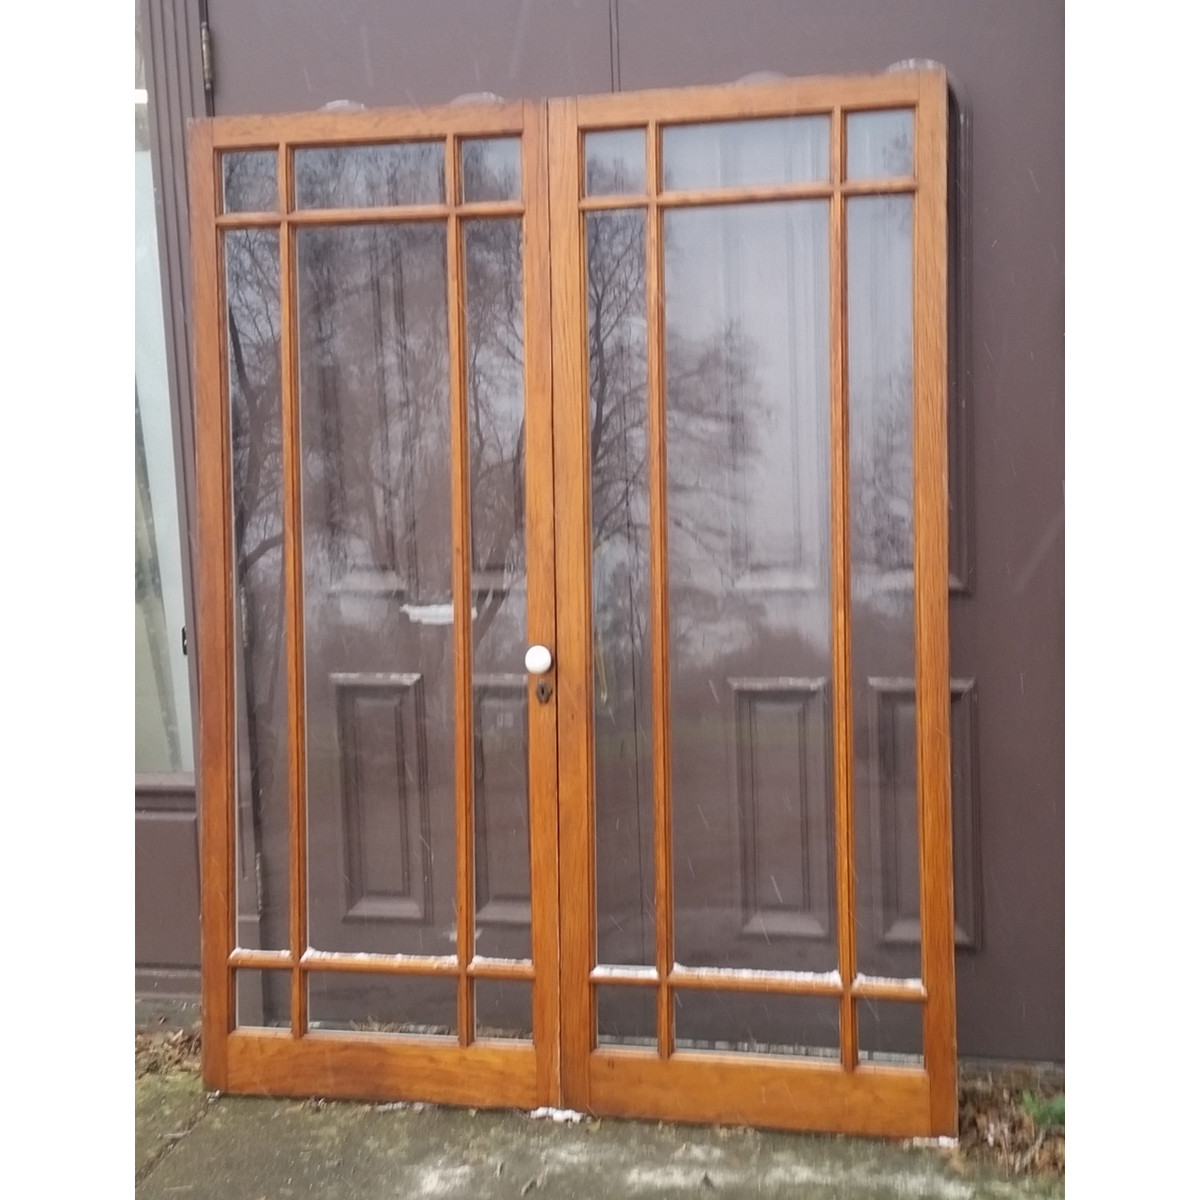 "D19117B - Pair of Antique Oak 9 Light Marginal French Doors 64-1/4"" x 83-3/4"""